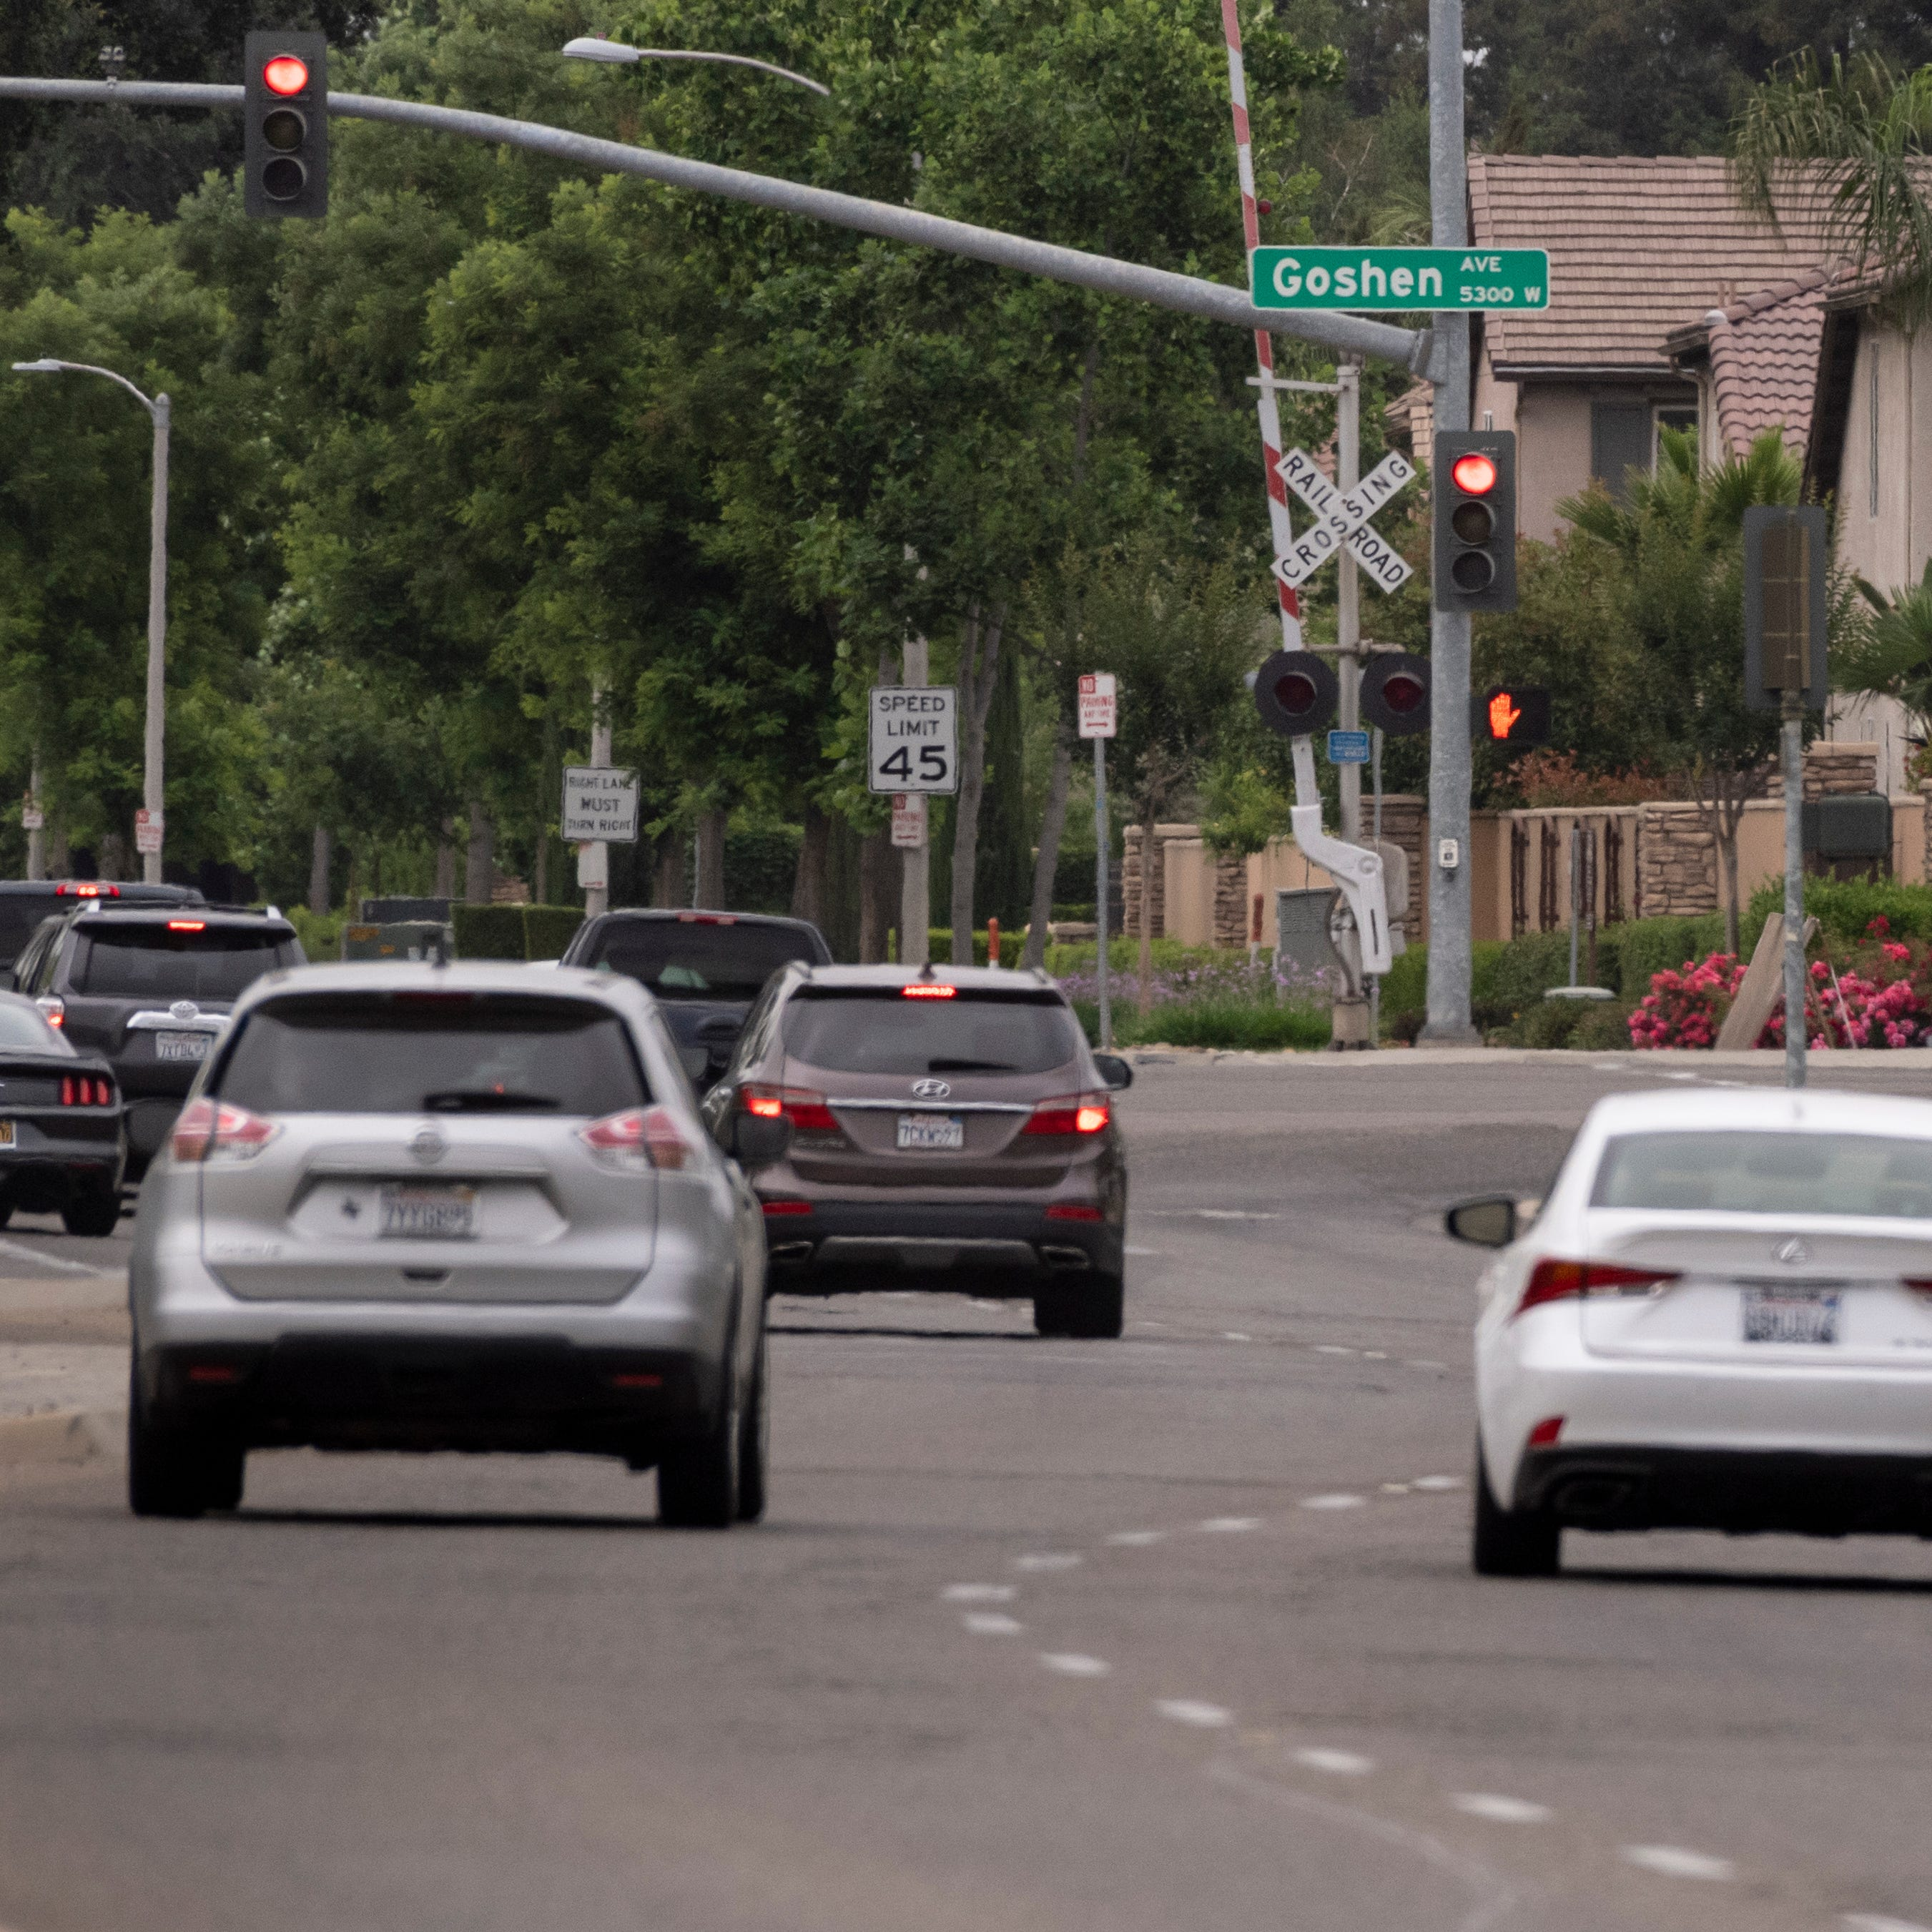 Expect traffic delays through the weekend at this Visalia intersection